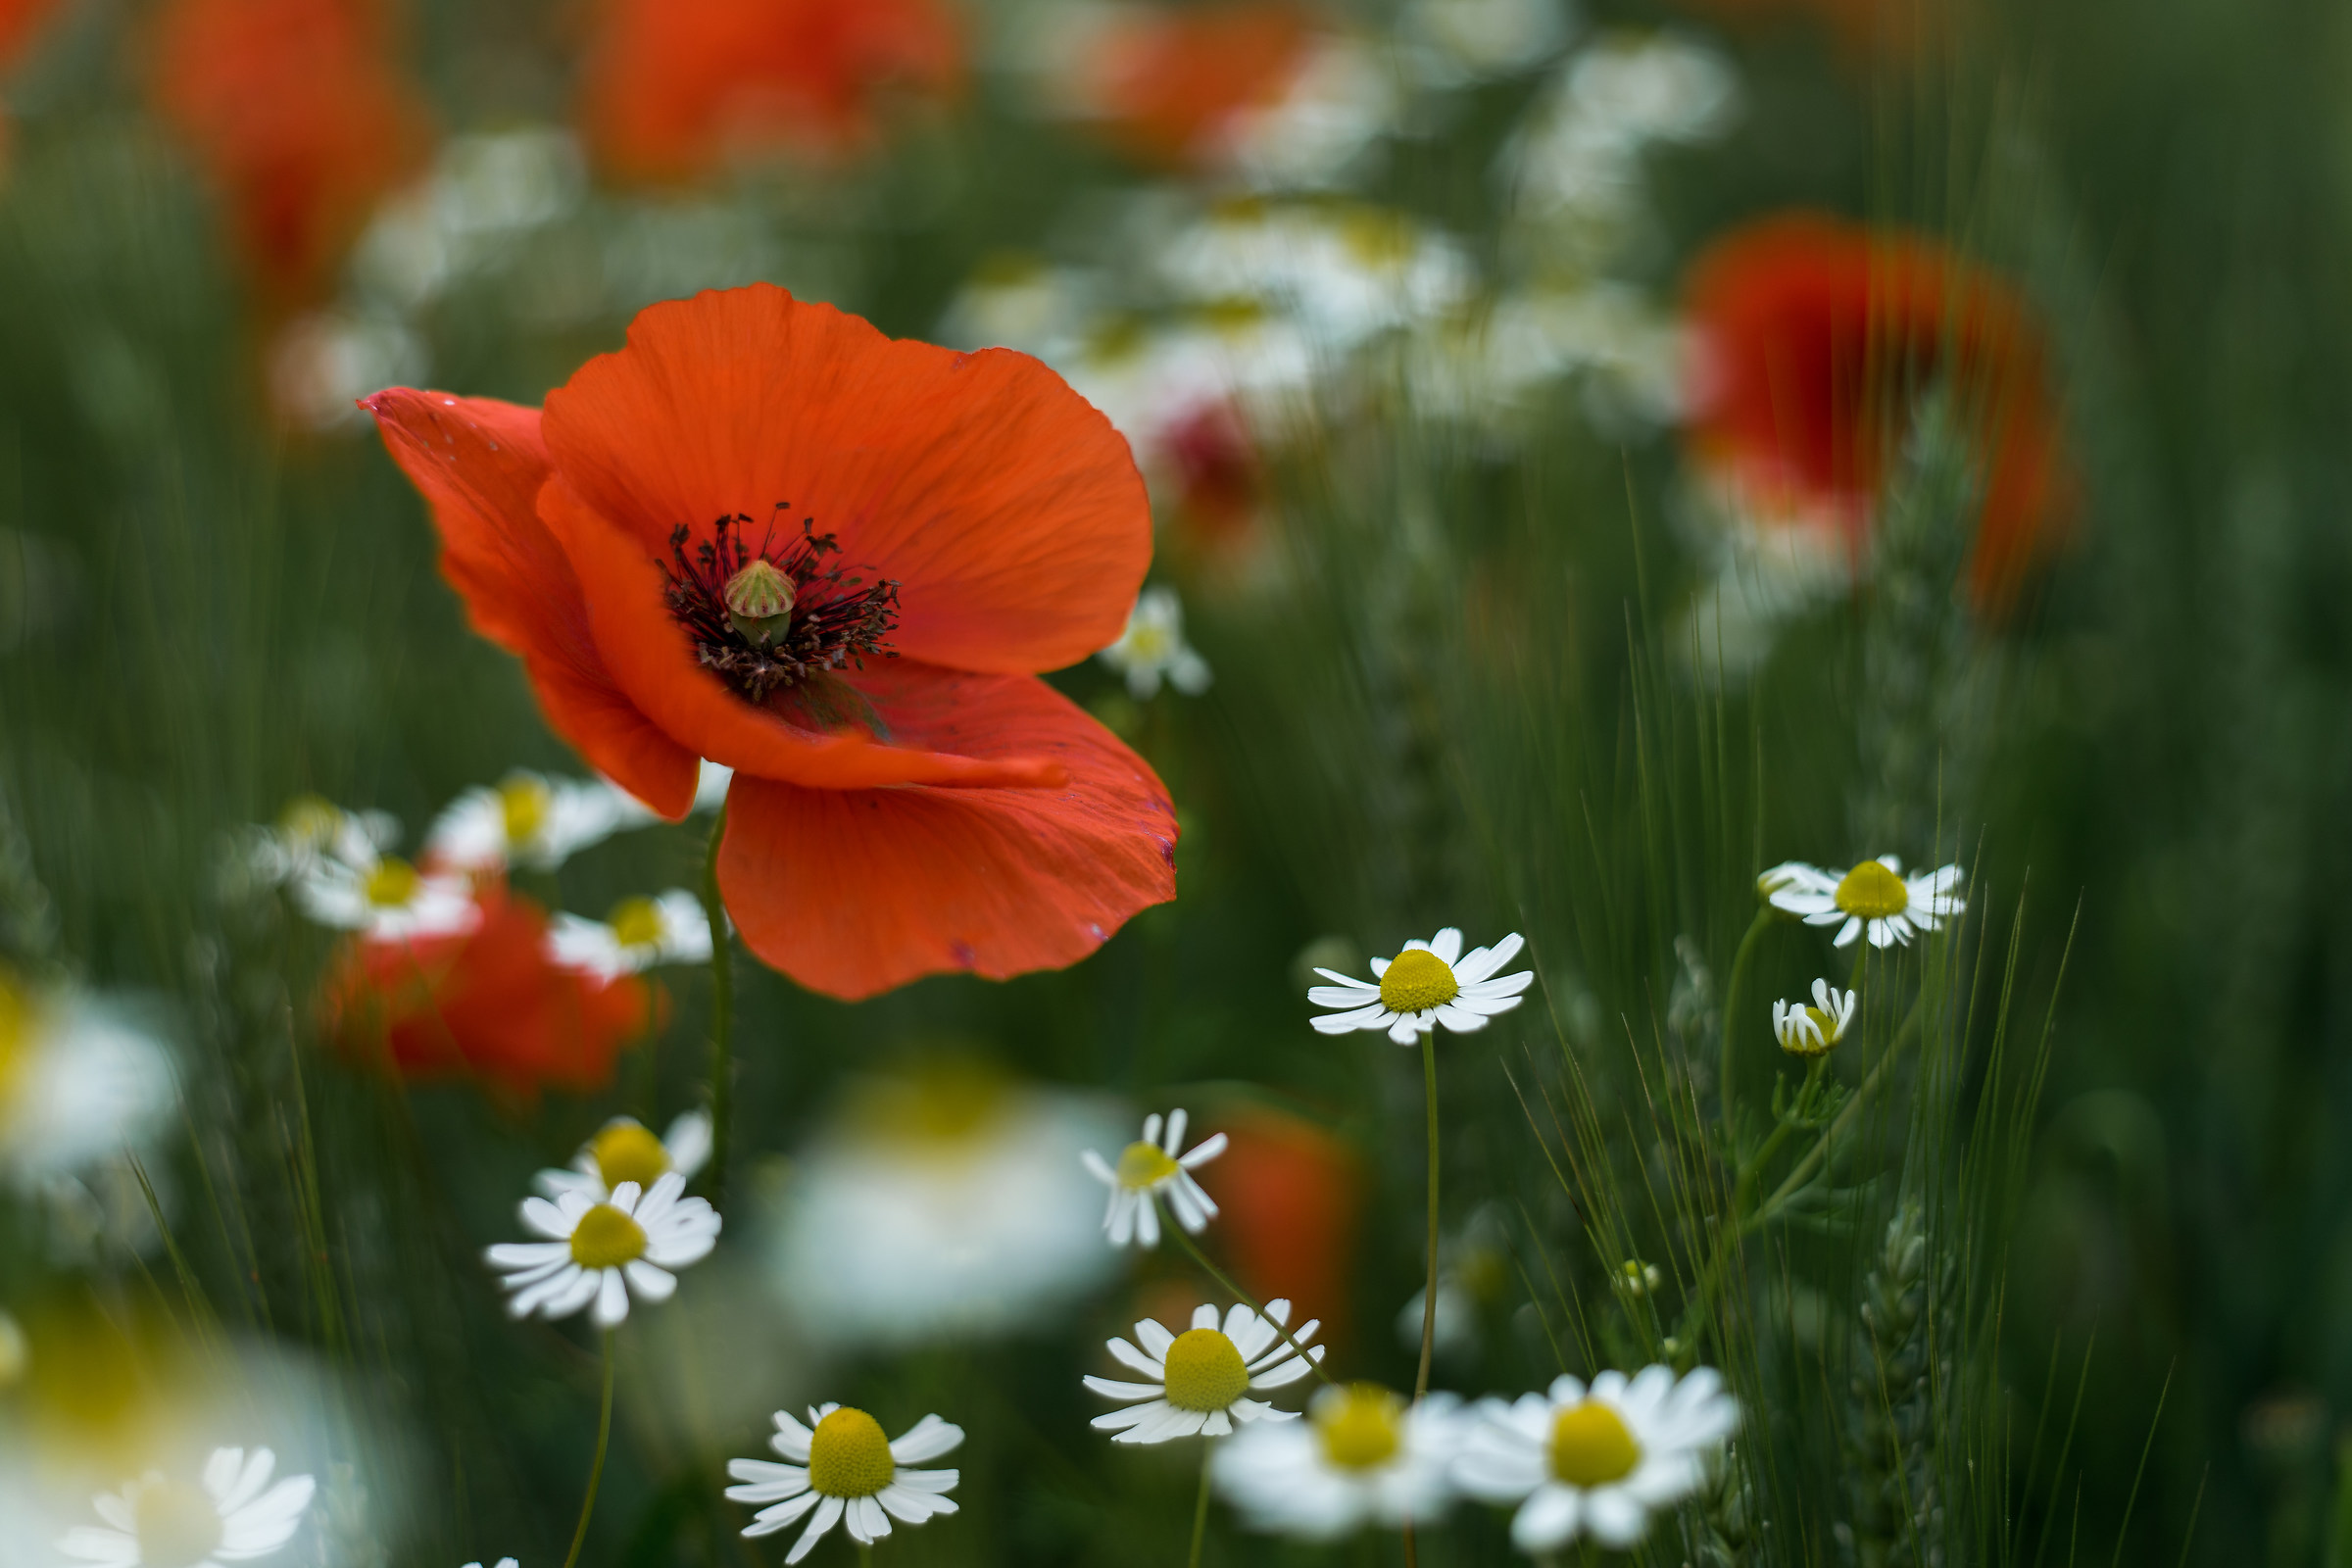 Poppies among daisies...